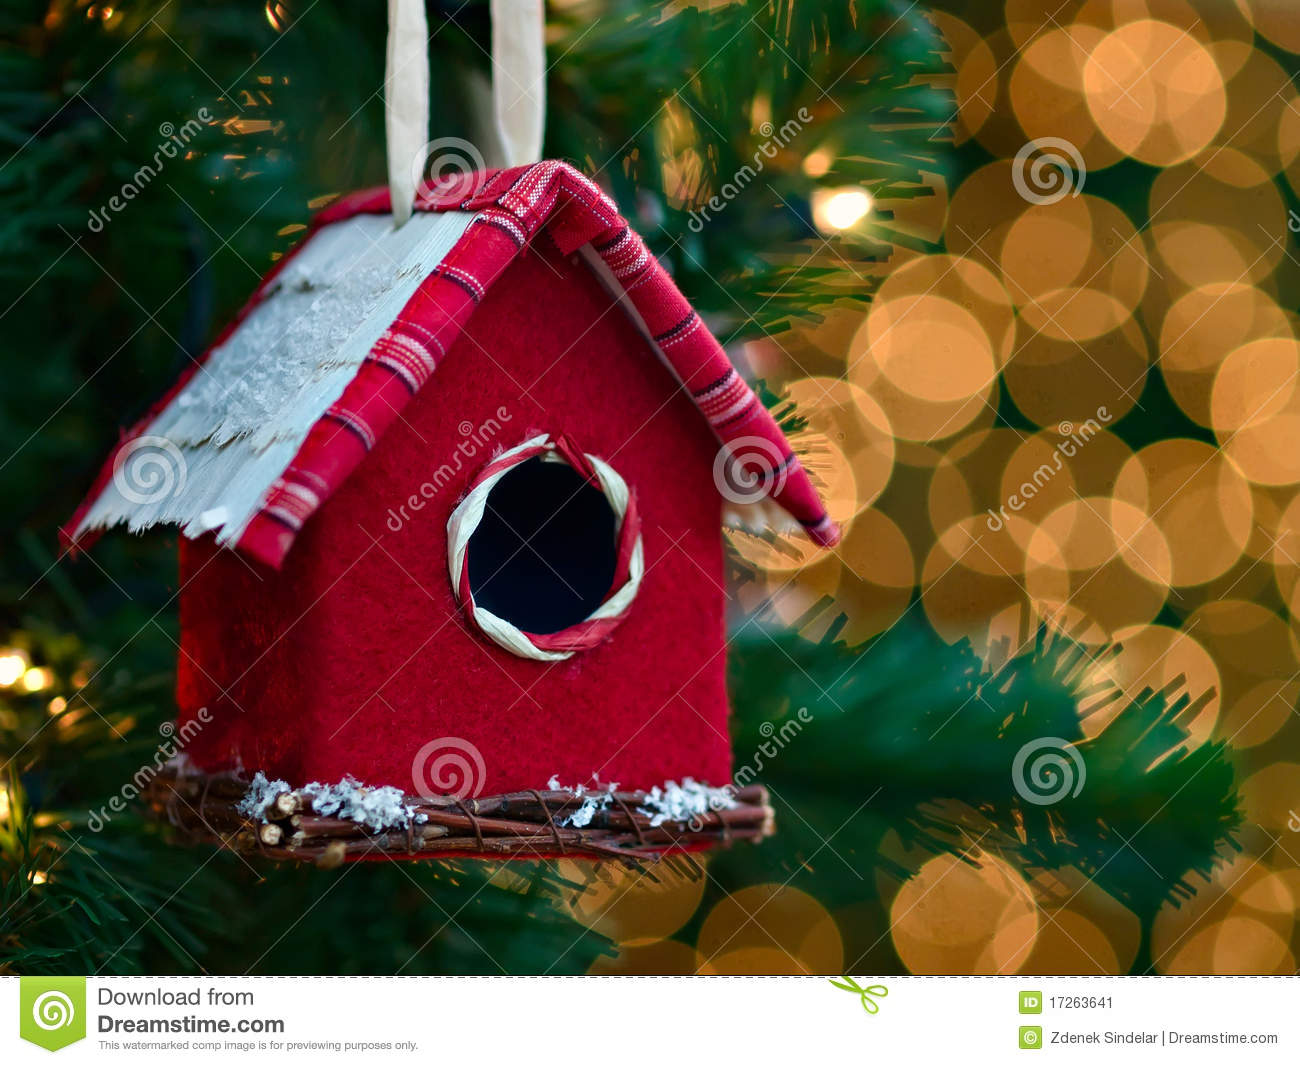 christmas ornament bird house - Bird House Christmas Decoration